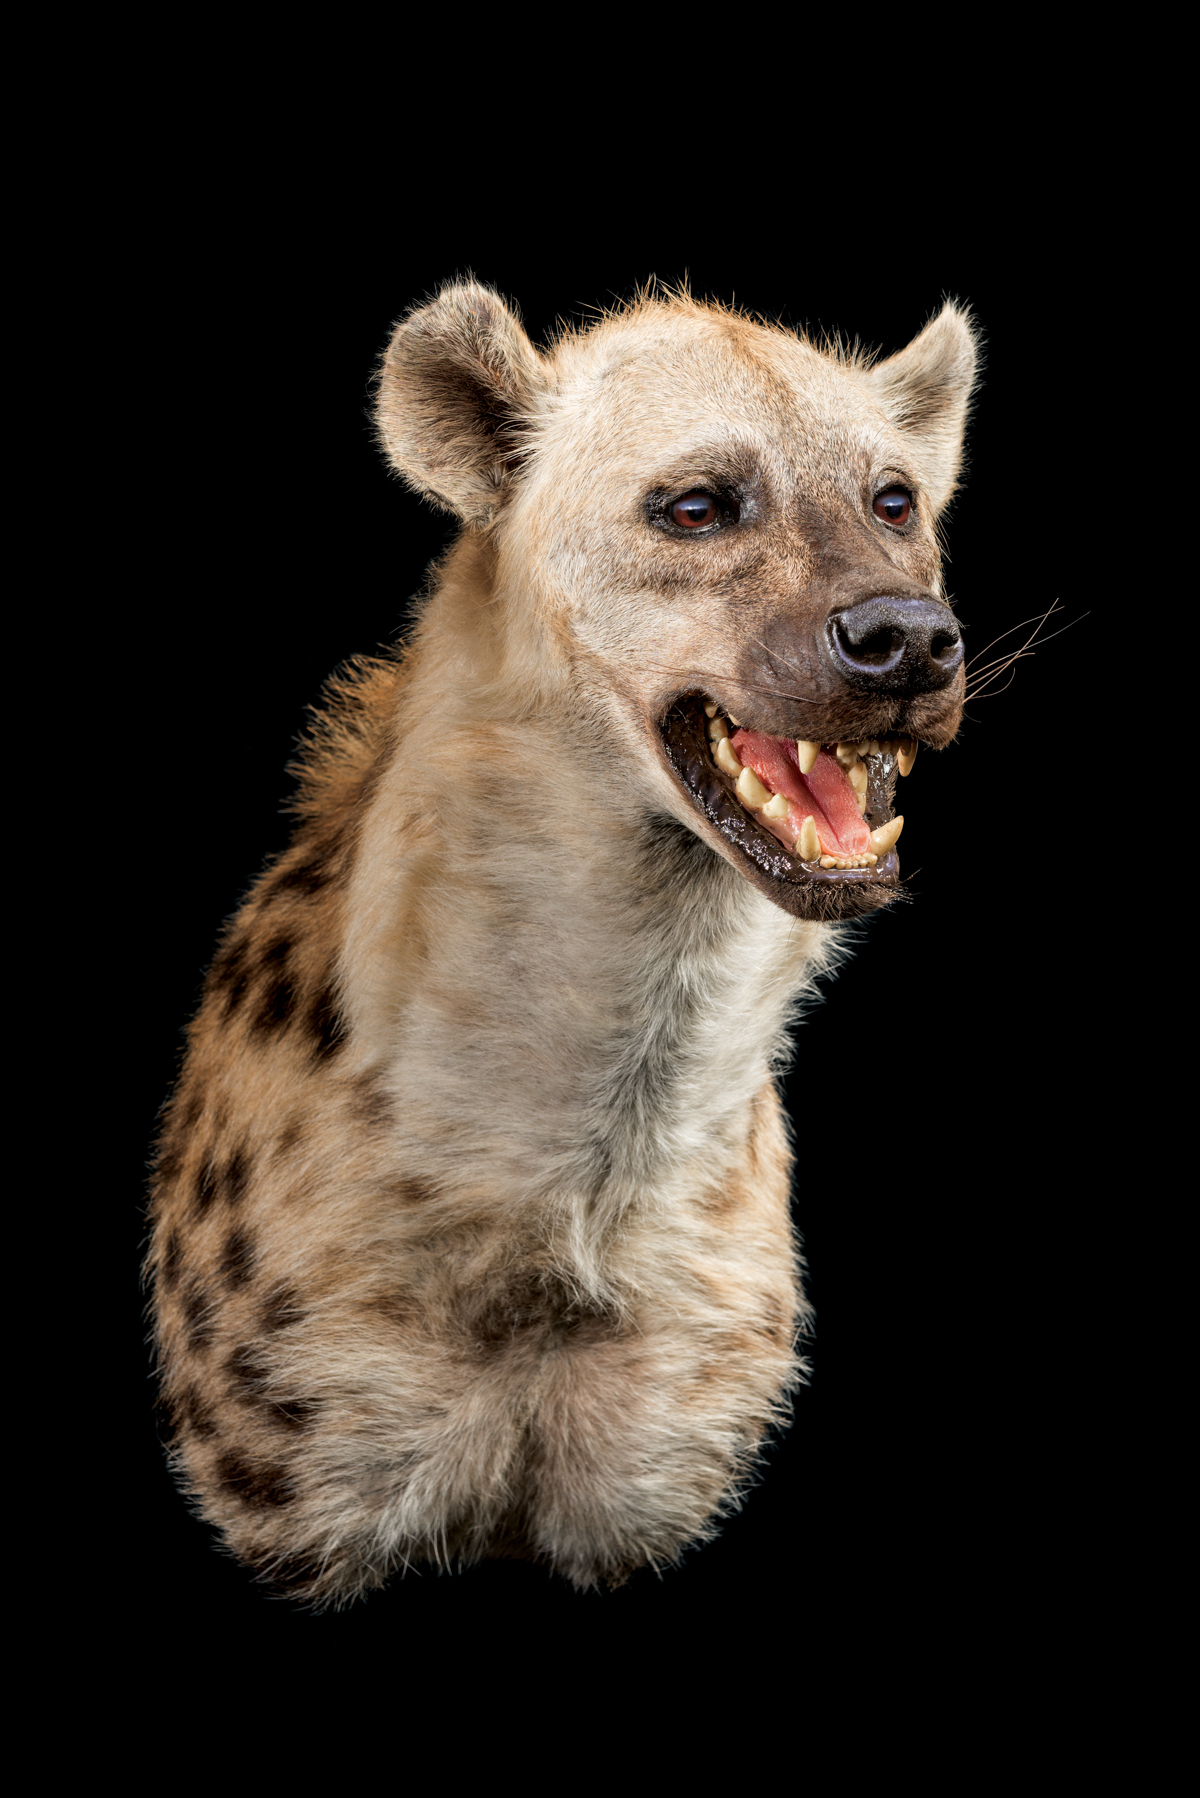 Hyena-Spotted-shouldermount-STRAIGHT-dd-215-1.jpg